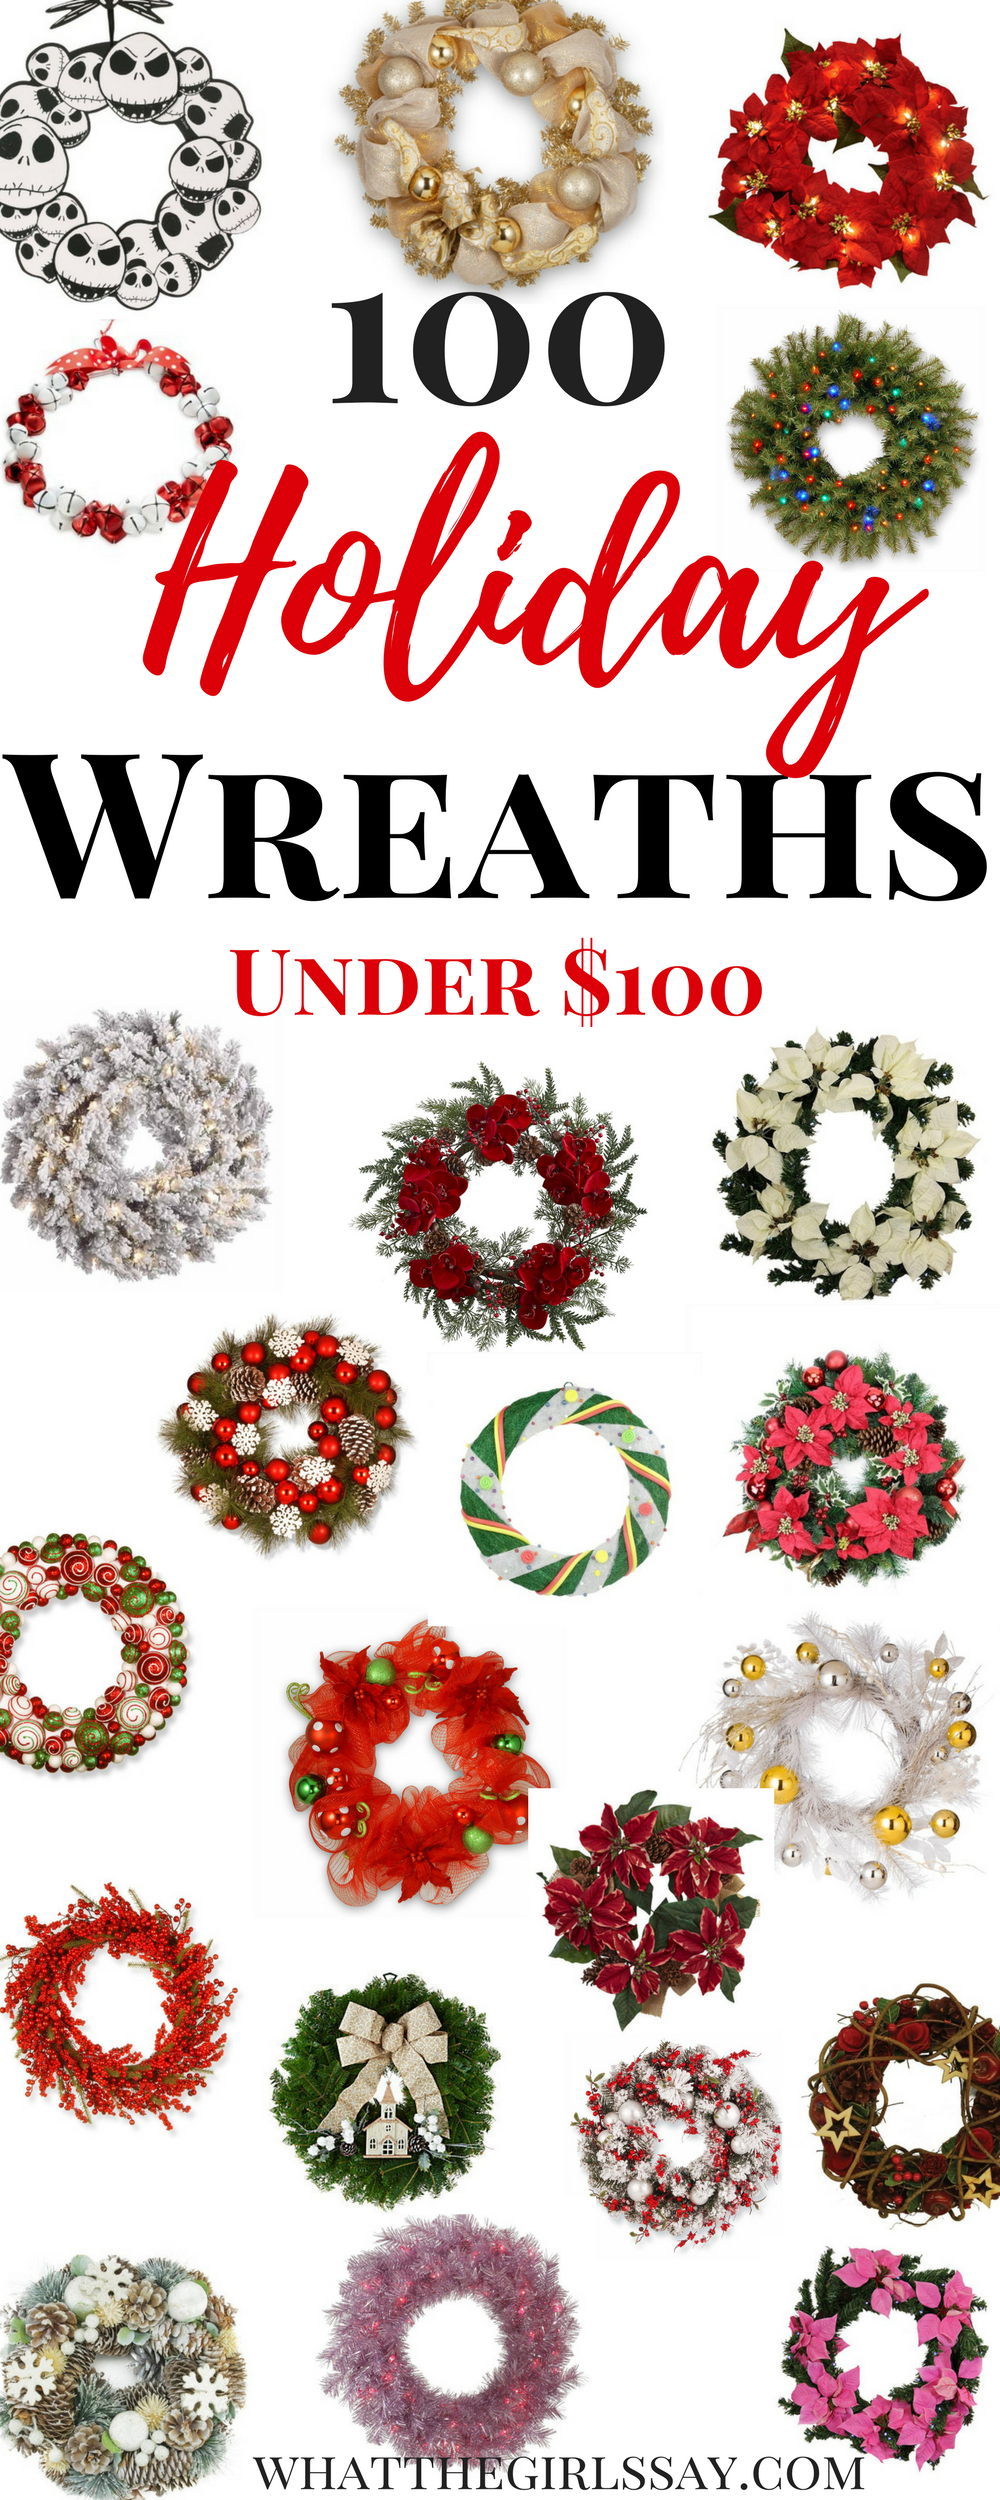 100 Holiday Wreaths Under $100! | Front door wreaths, Holiday ...